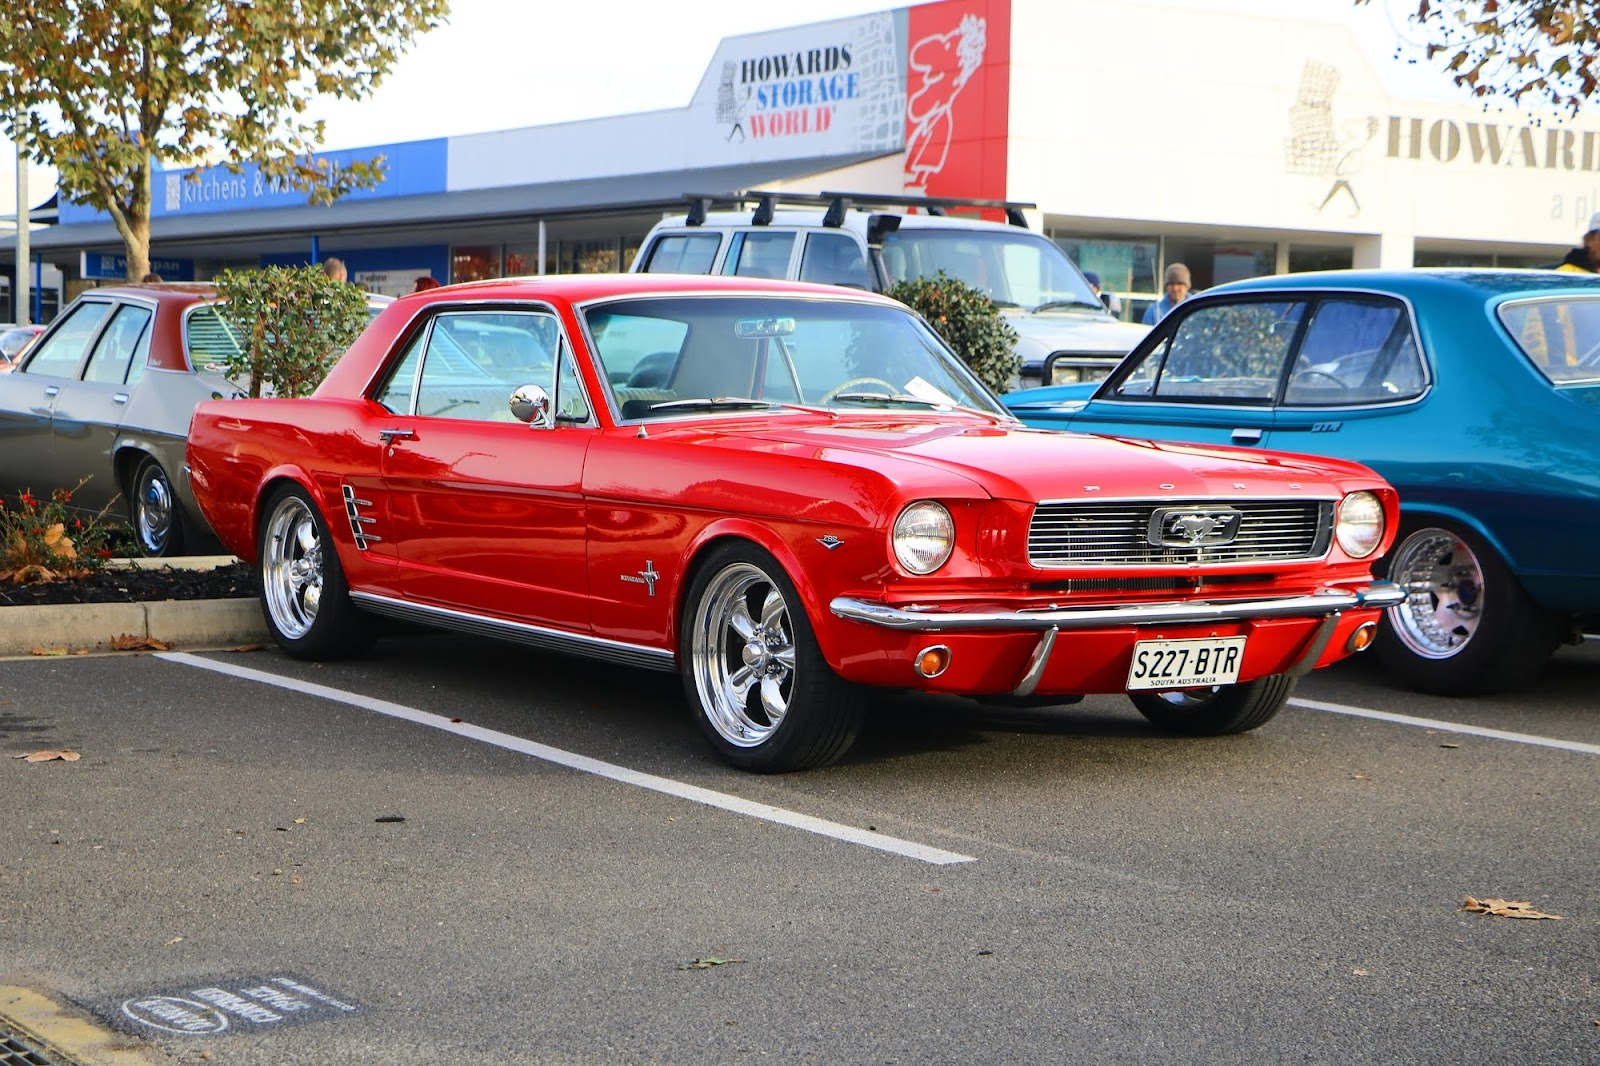 Ford Mustang Coupe Red.jpg